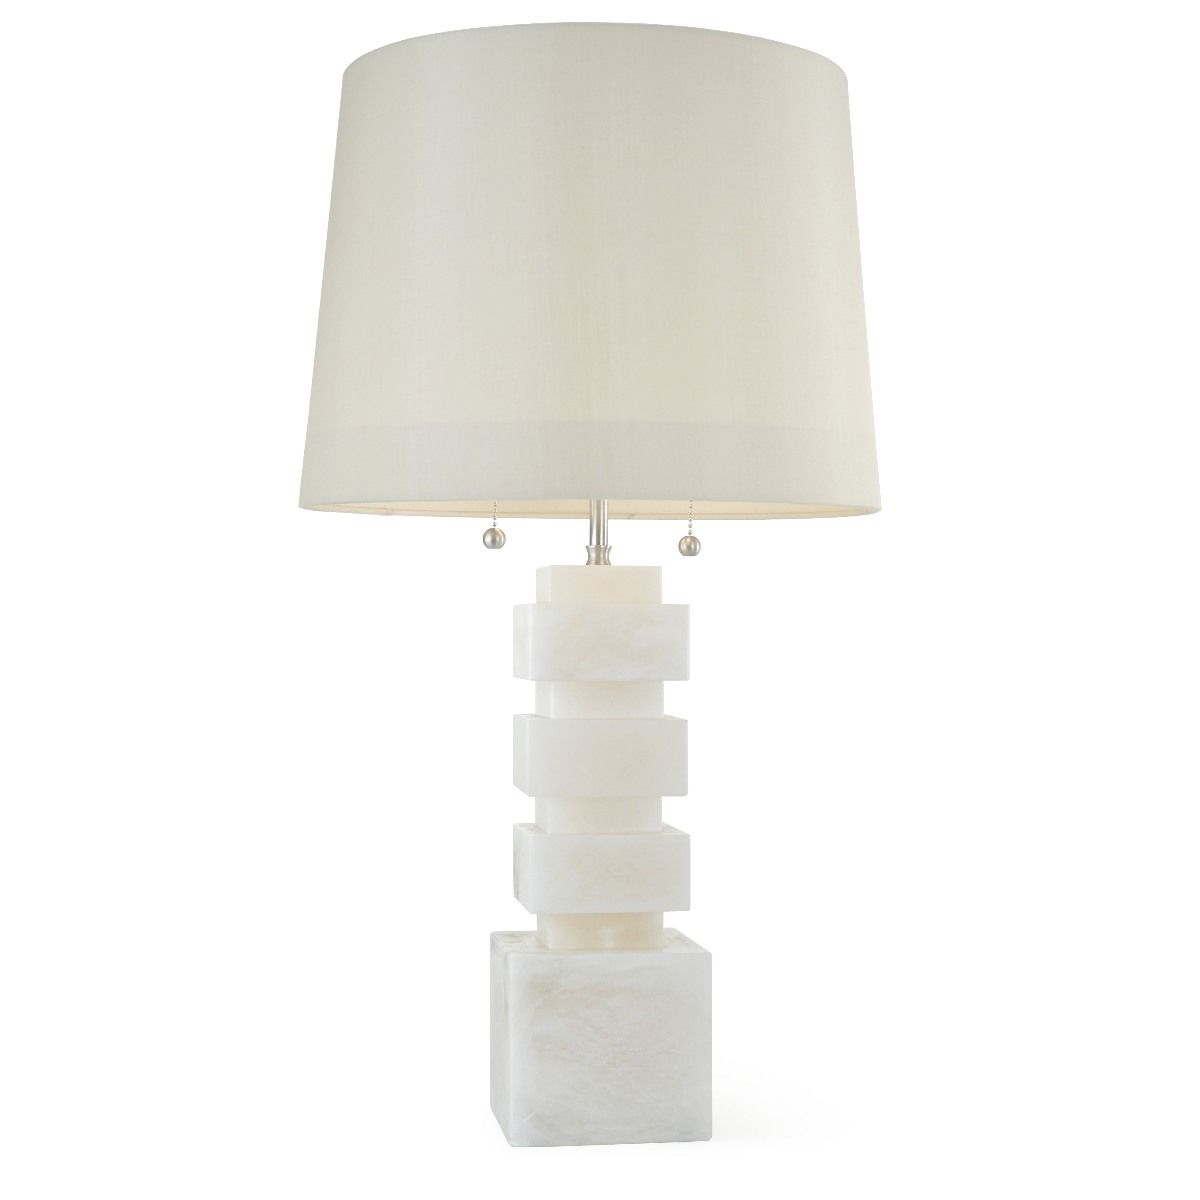 Hammond alabaster table lamp dennis miller associates fine hammond alabaster table lamp dennis miller associates fine contemporary furniture lighting and carpets in mozeypictures Choice Image